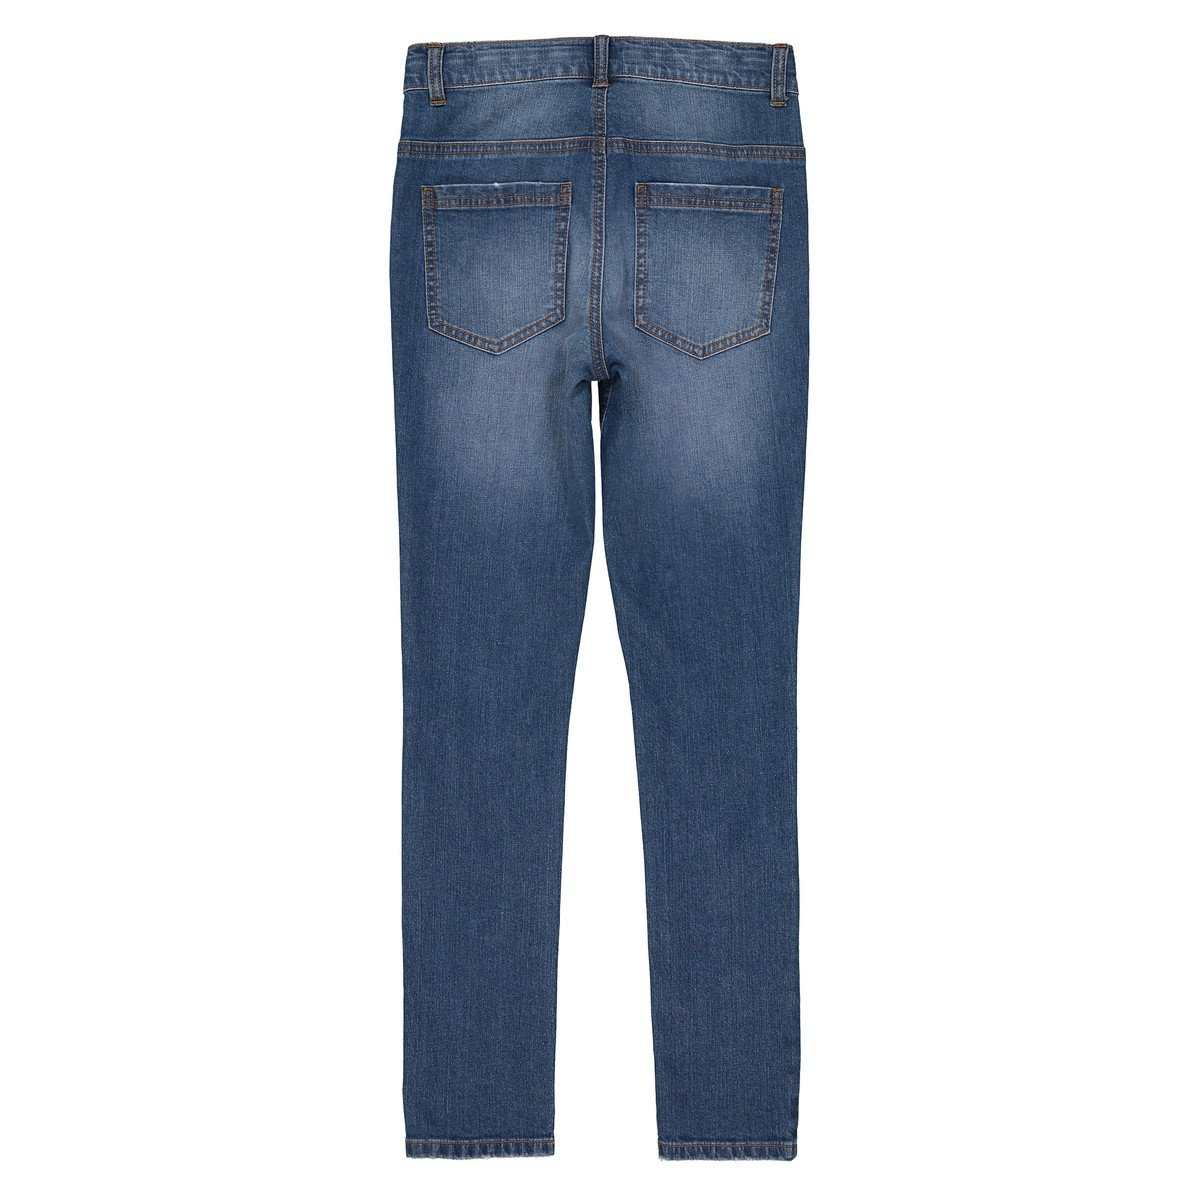 10-16 Years La Redoute Collections Big Boys Ripped Knee Skinny Jeans